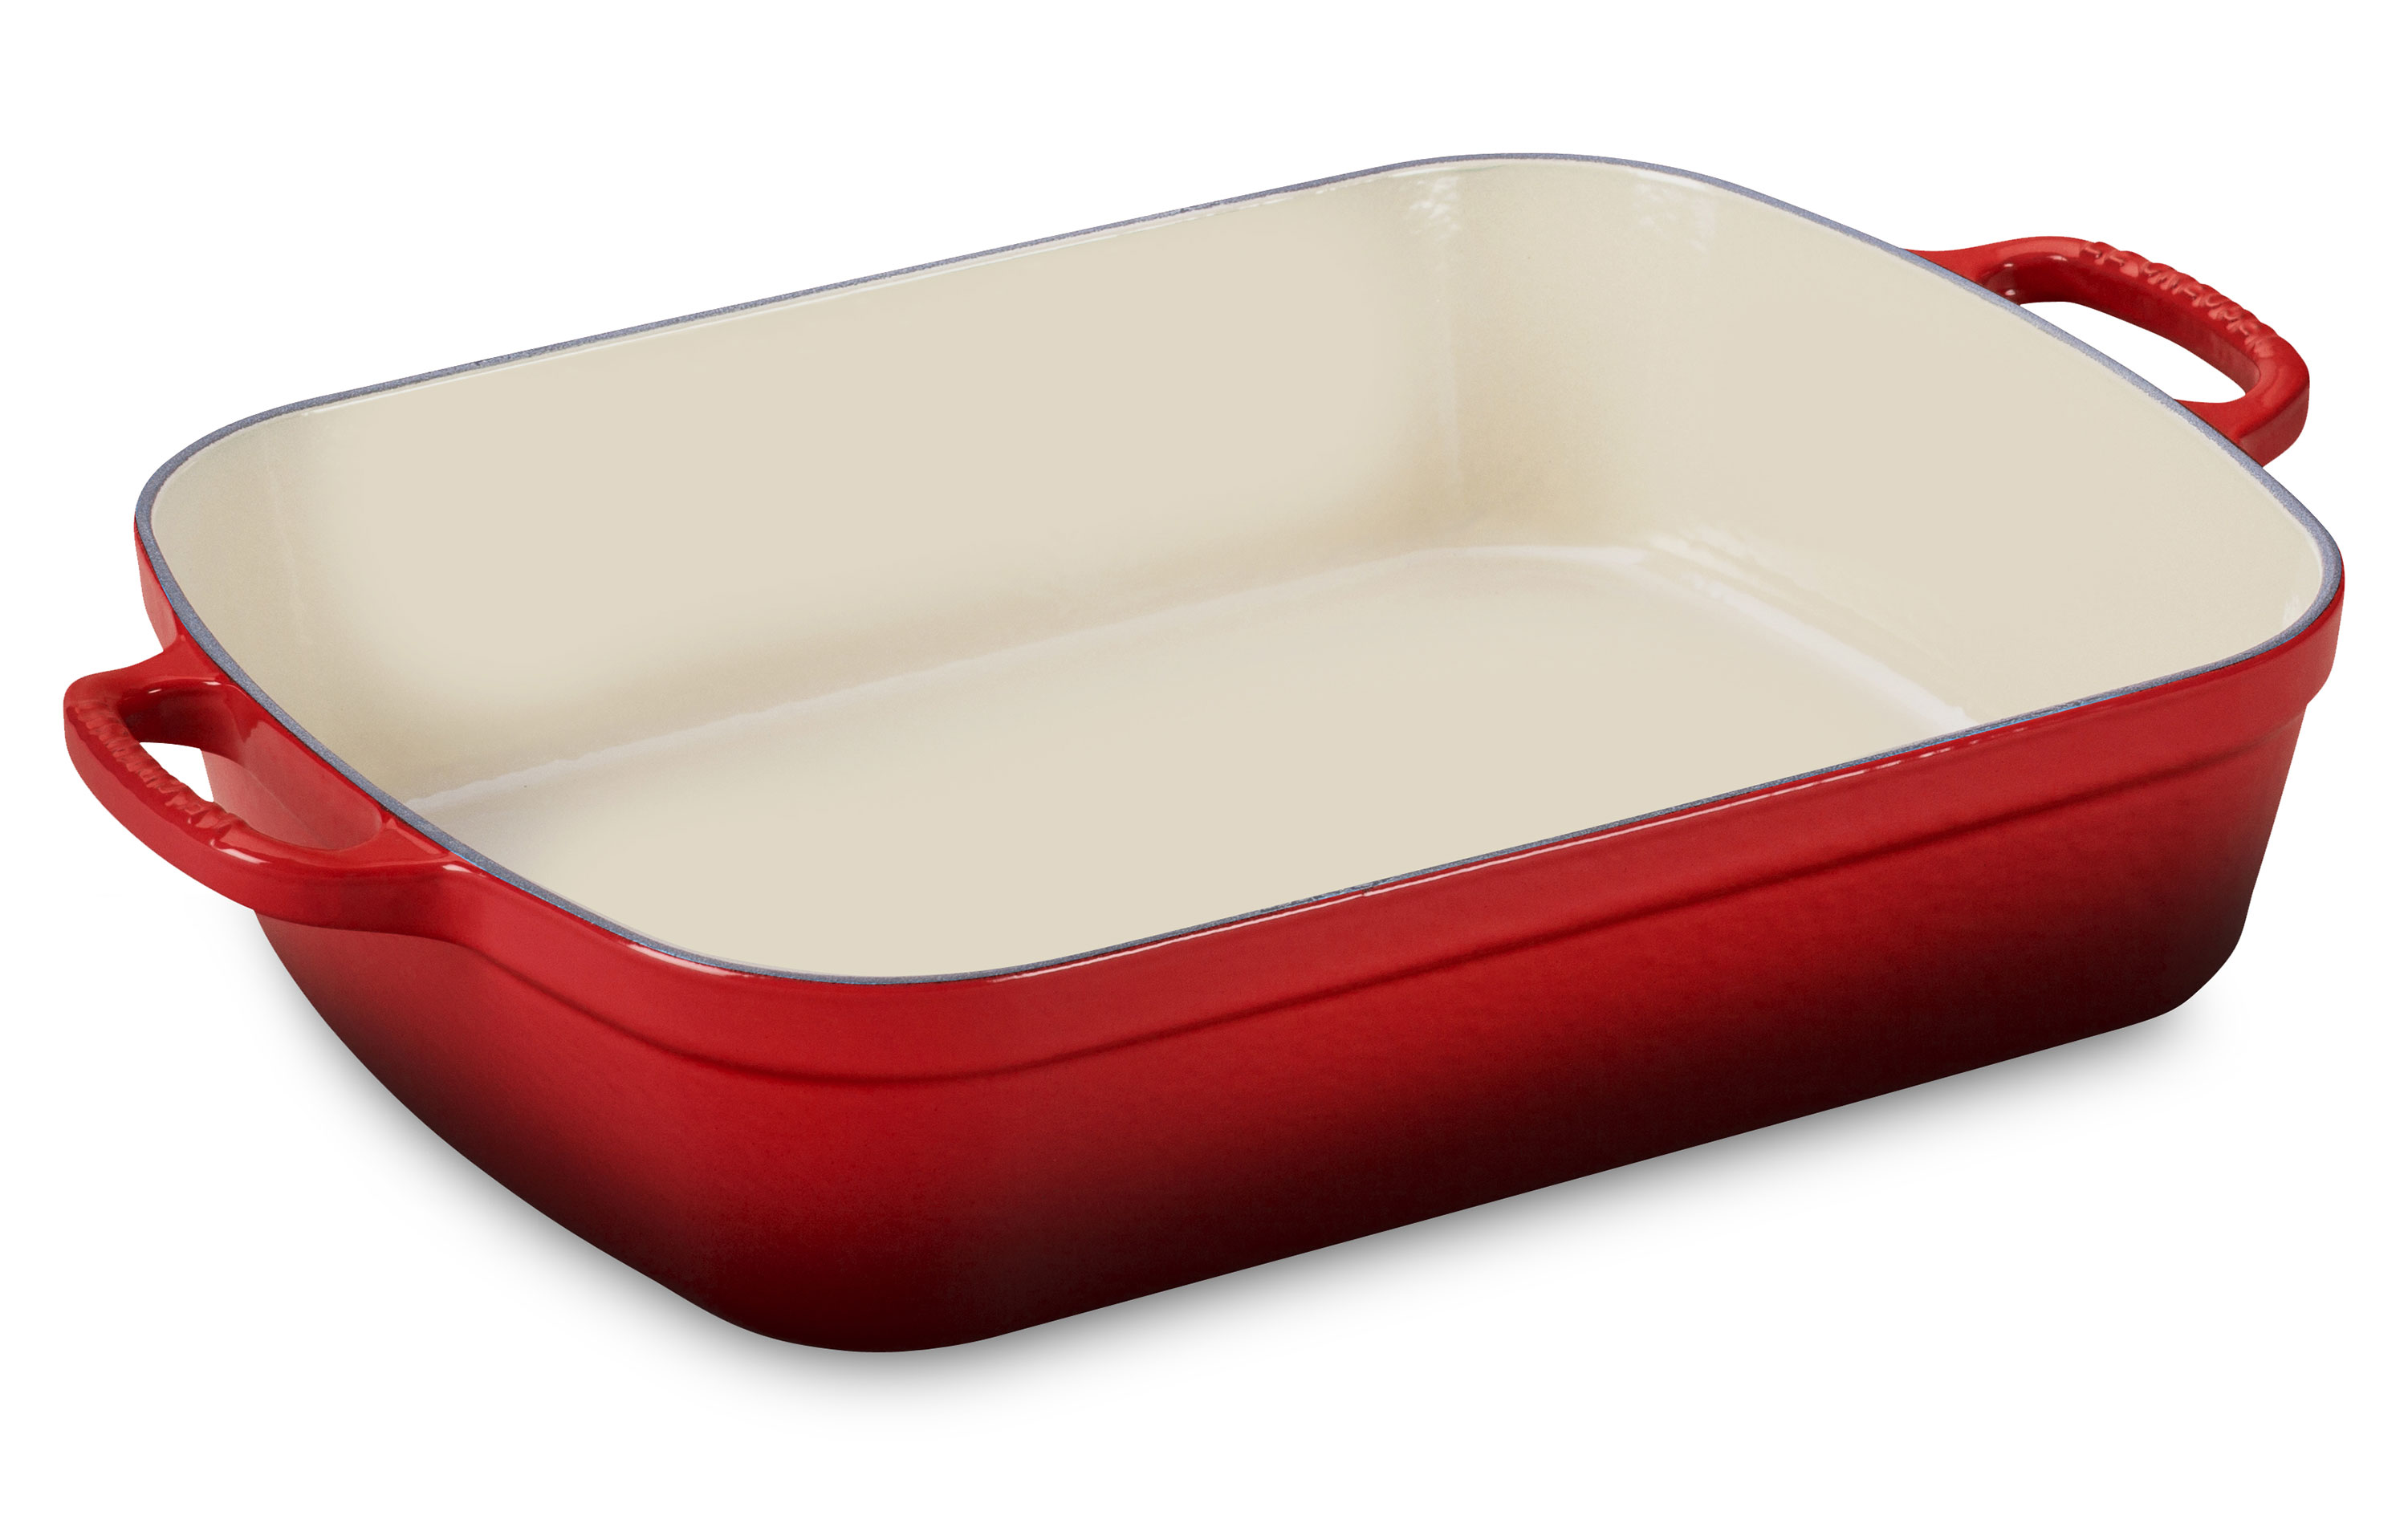 Le Creuset Signature Cast Iron Roasting Pan 14x10 75